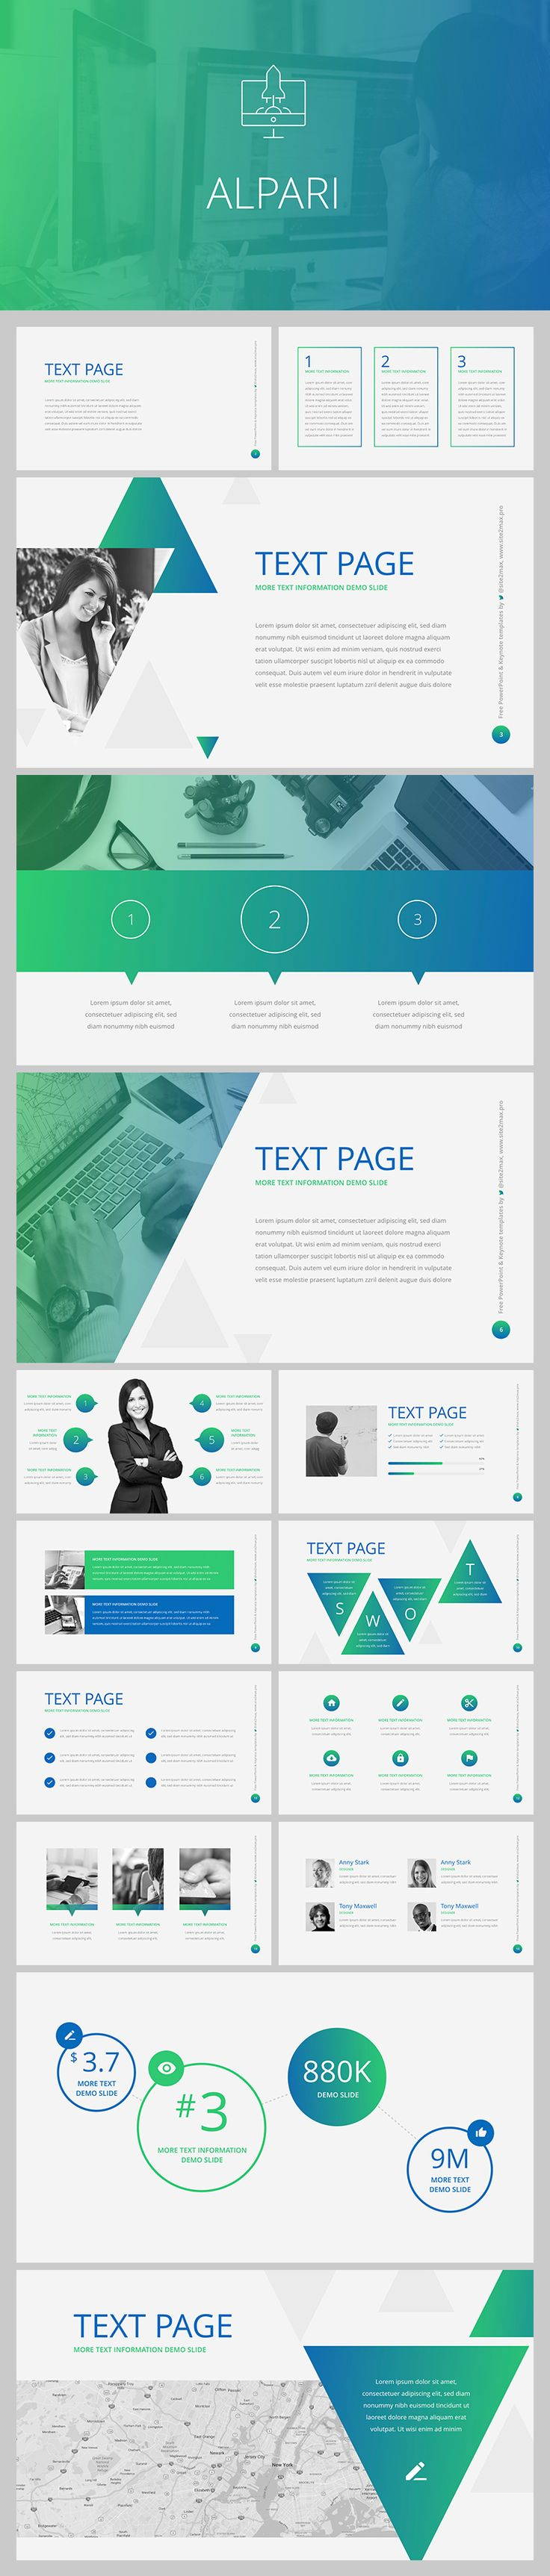 """Alpari"" marketing free PowerPoint. Download now > Professional templates for business, marketing and education. Modern design, huge base of free templates."